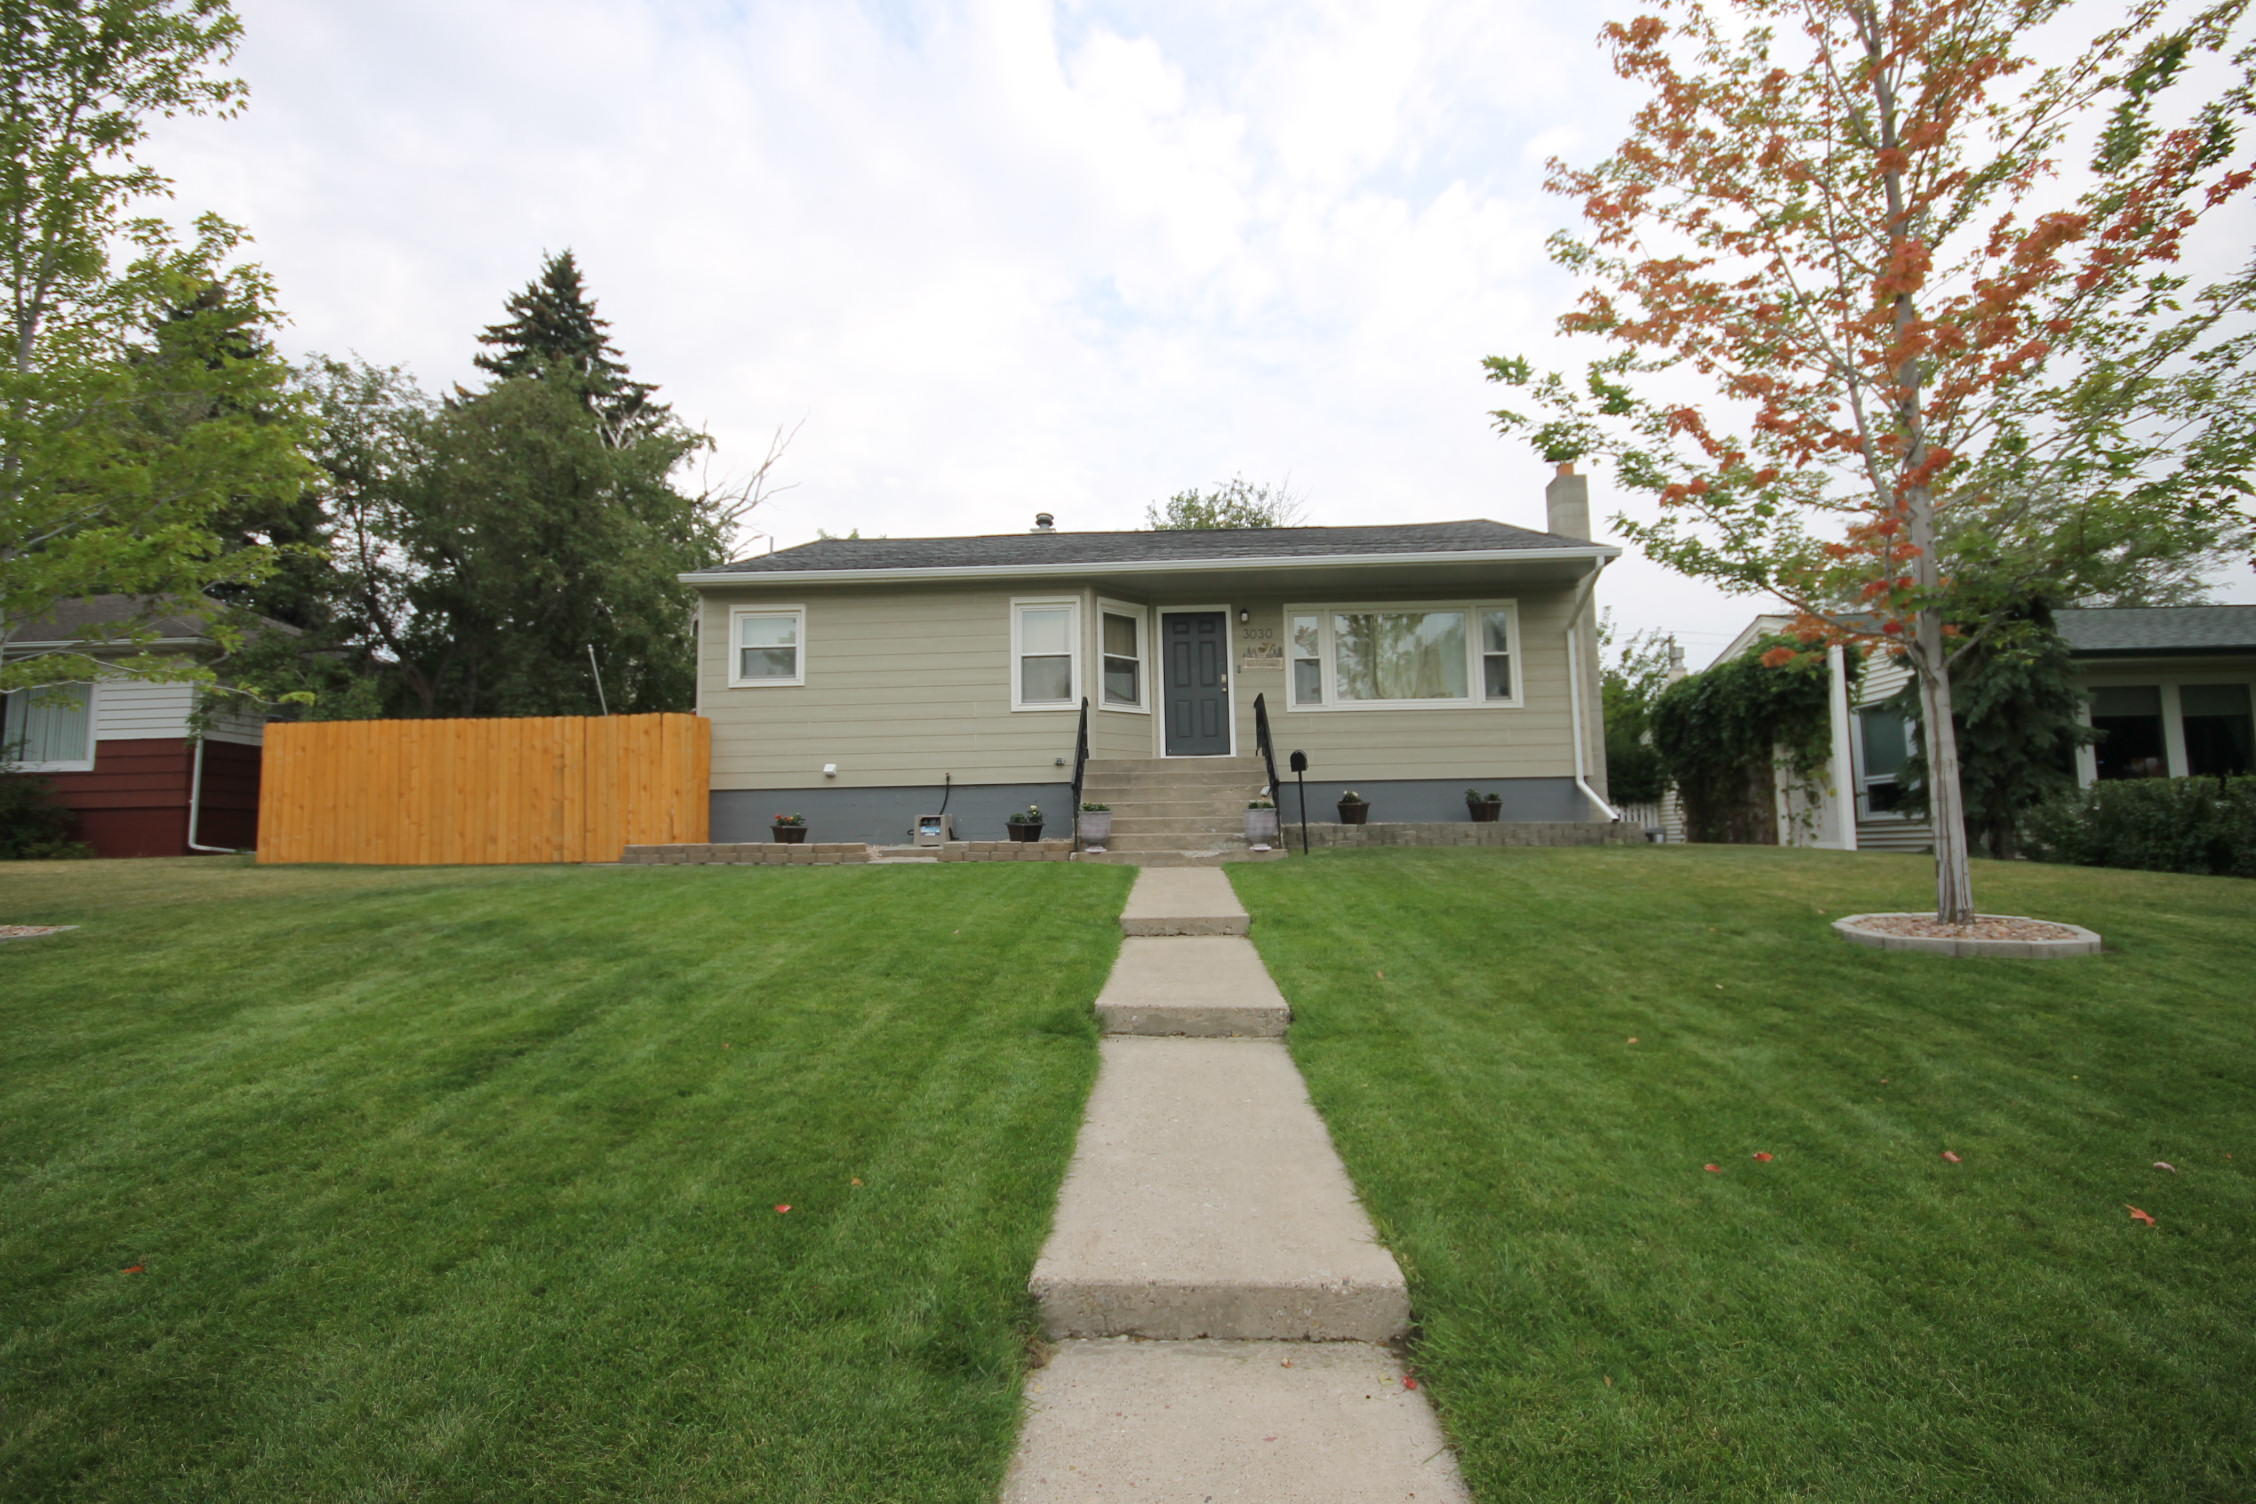 Immaculate east end home with many updates! Spacious living room, updated kitchen and main floor bathroom.  Newer hot water heater and fence. Enjoy summer nights on the wood deck.